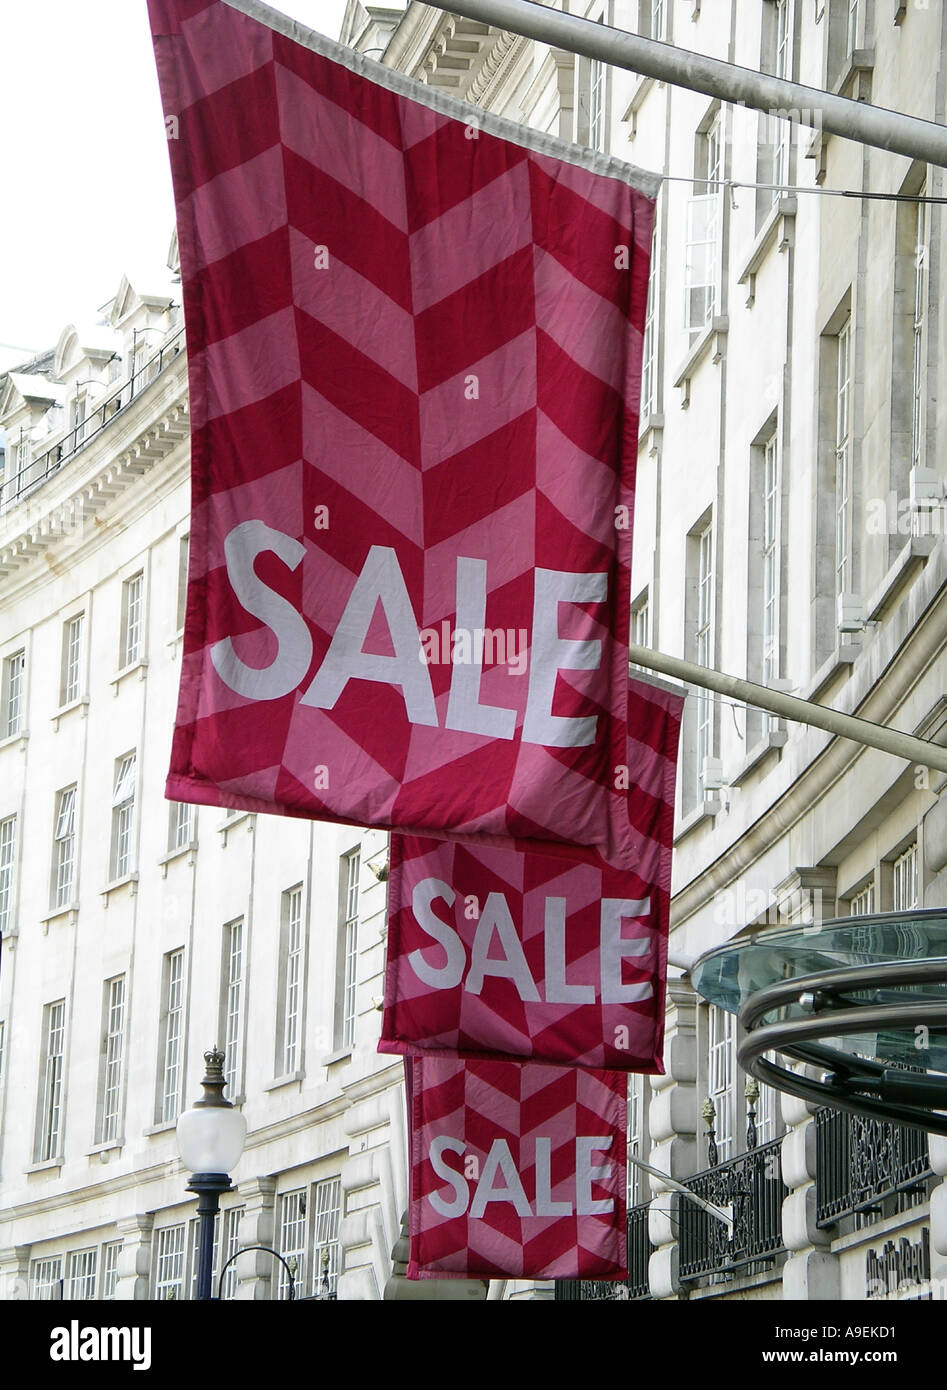 London Sale Picadilly - Stock Image